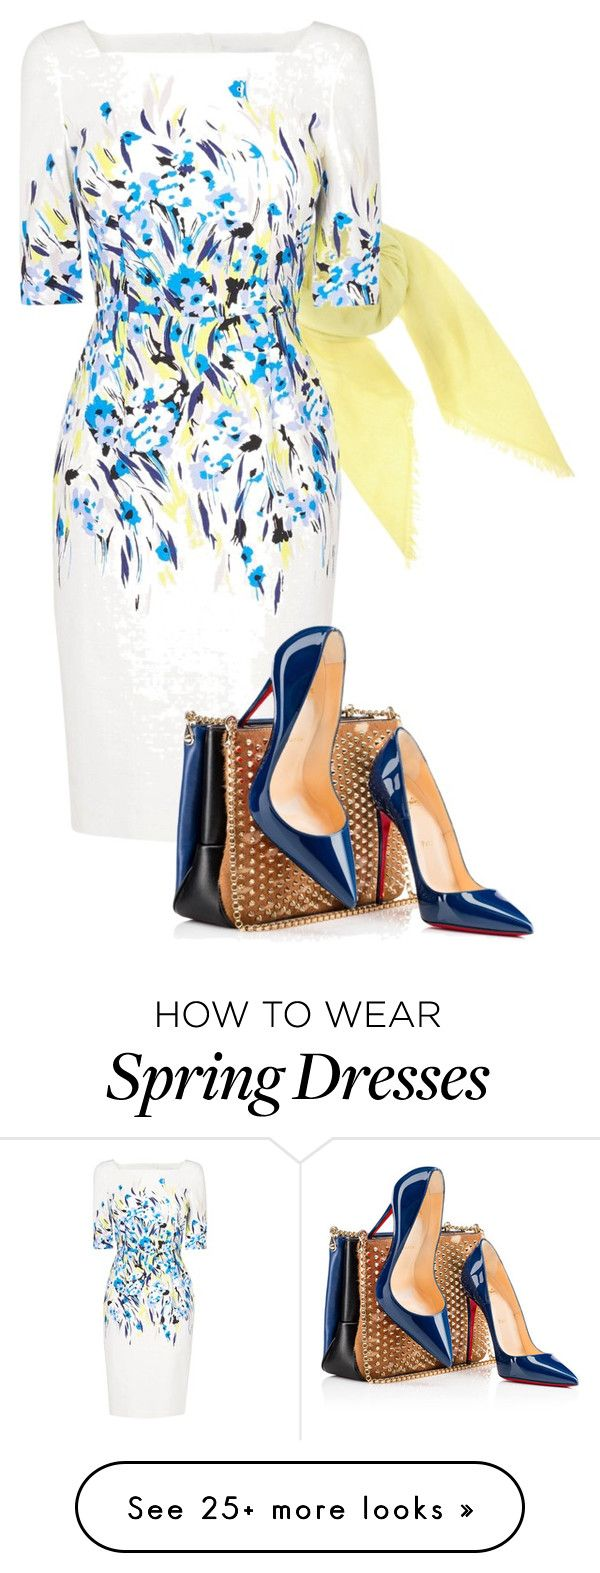 """""""Spring is in the Air"""" by meladesigns on Polyvore featuring Jardin des Orangers, L.K.Bennett, Christian Louboutin and meladesigns"""